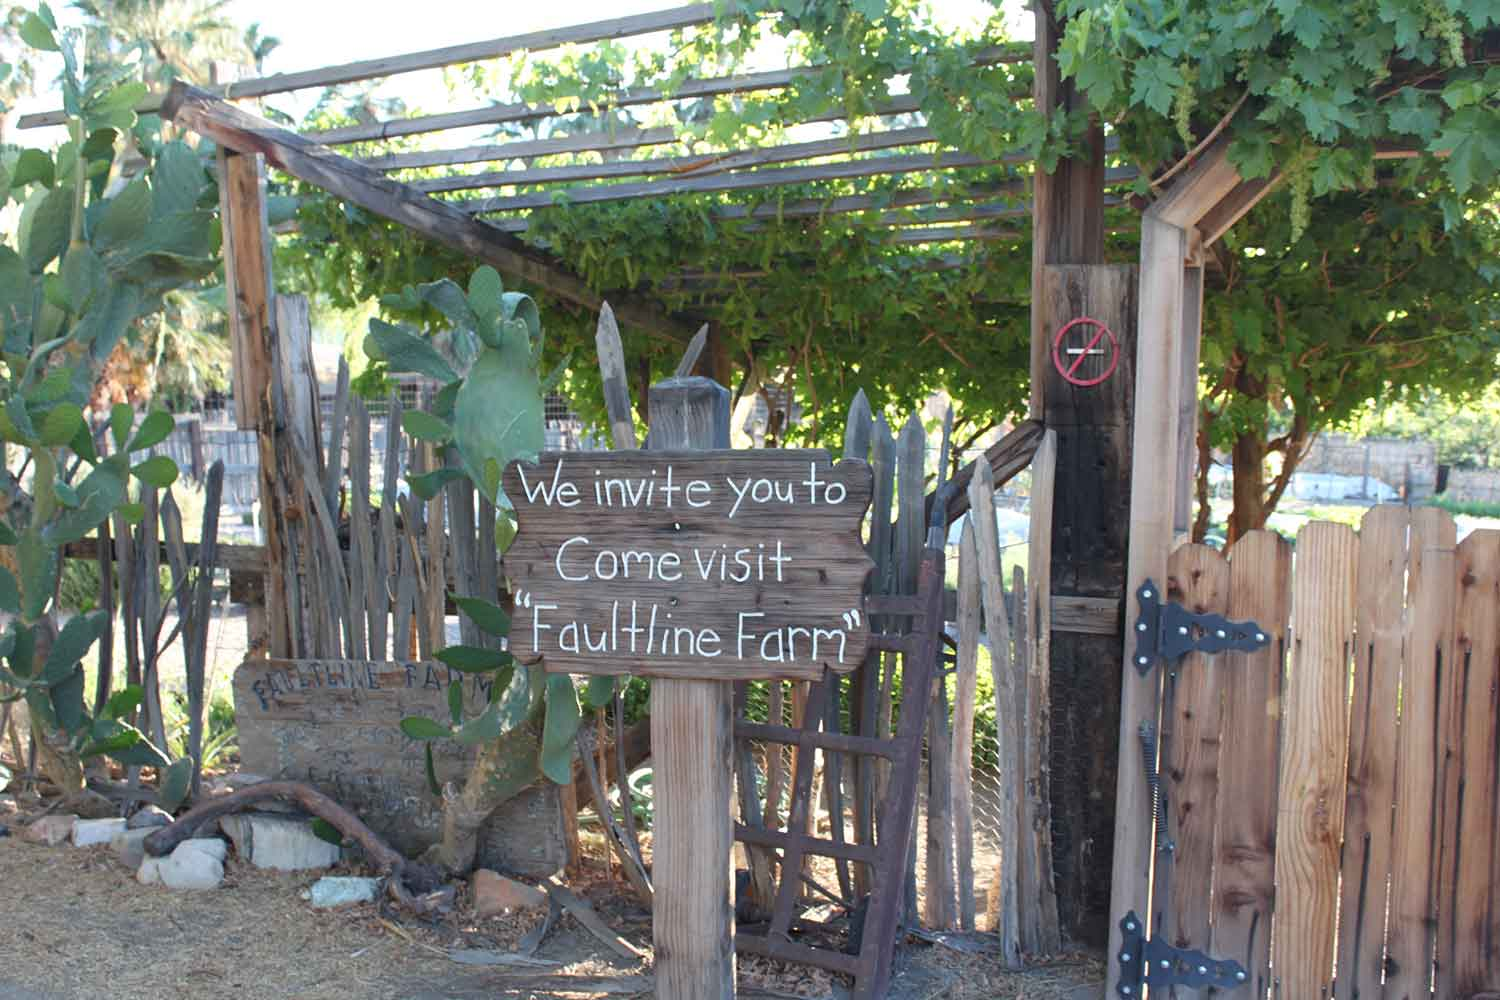 The Restaurant at the 29 Palms inn features ingredients grown at the Faultline Farm.